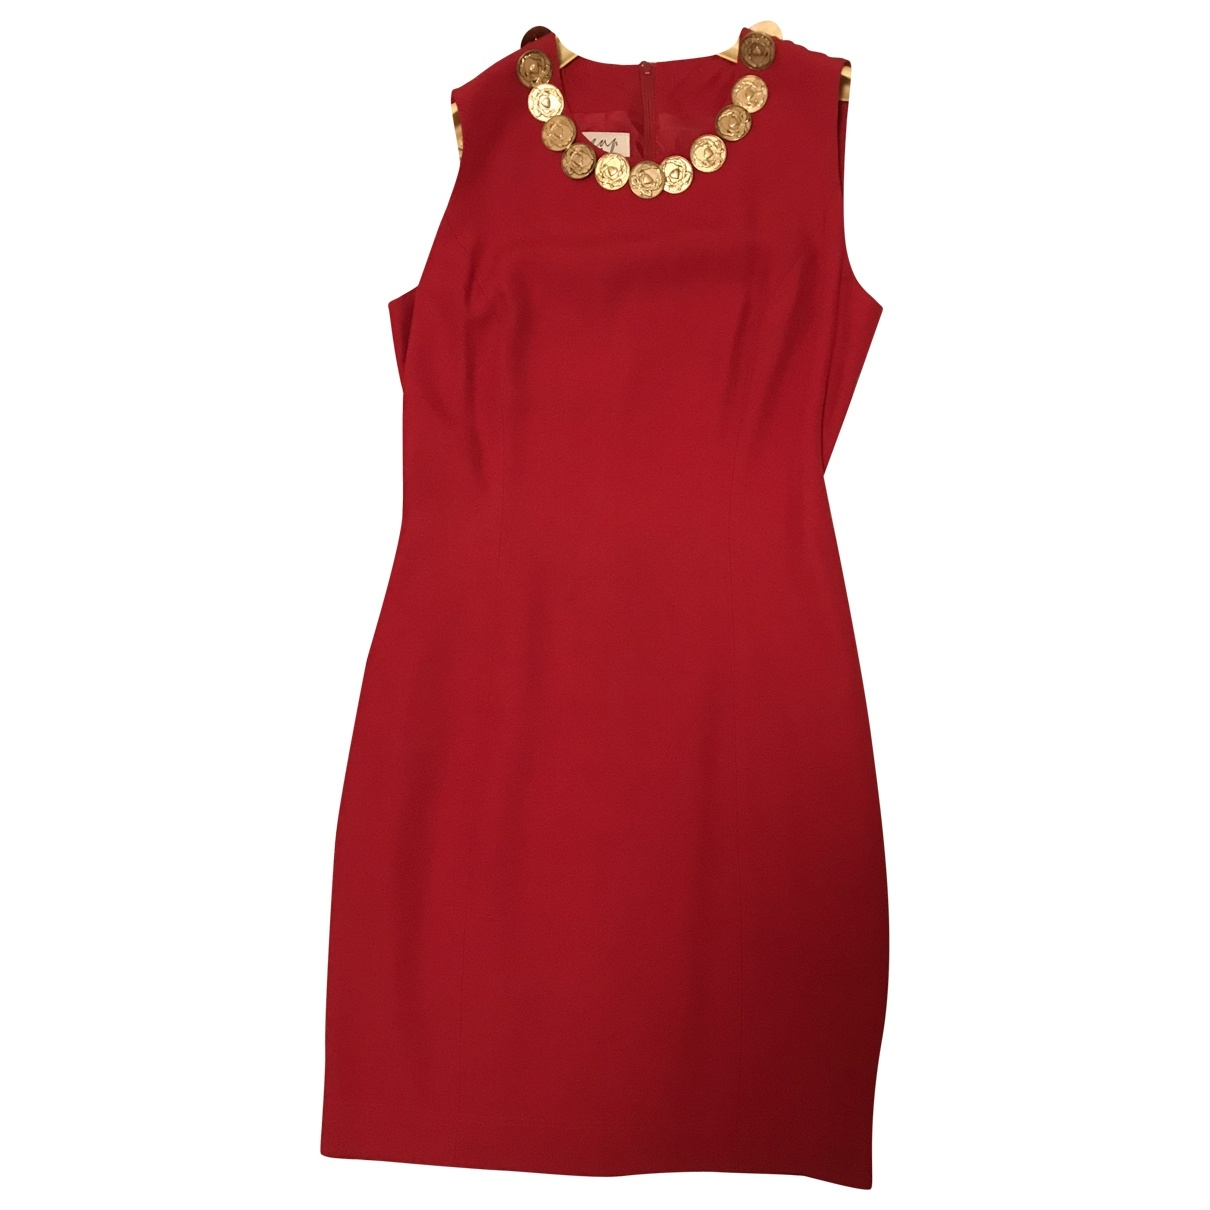 Moschino Cheap And Chic \N Red Silk dress for Women 42 IT